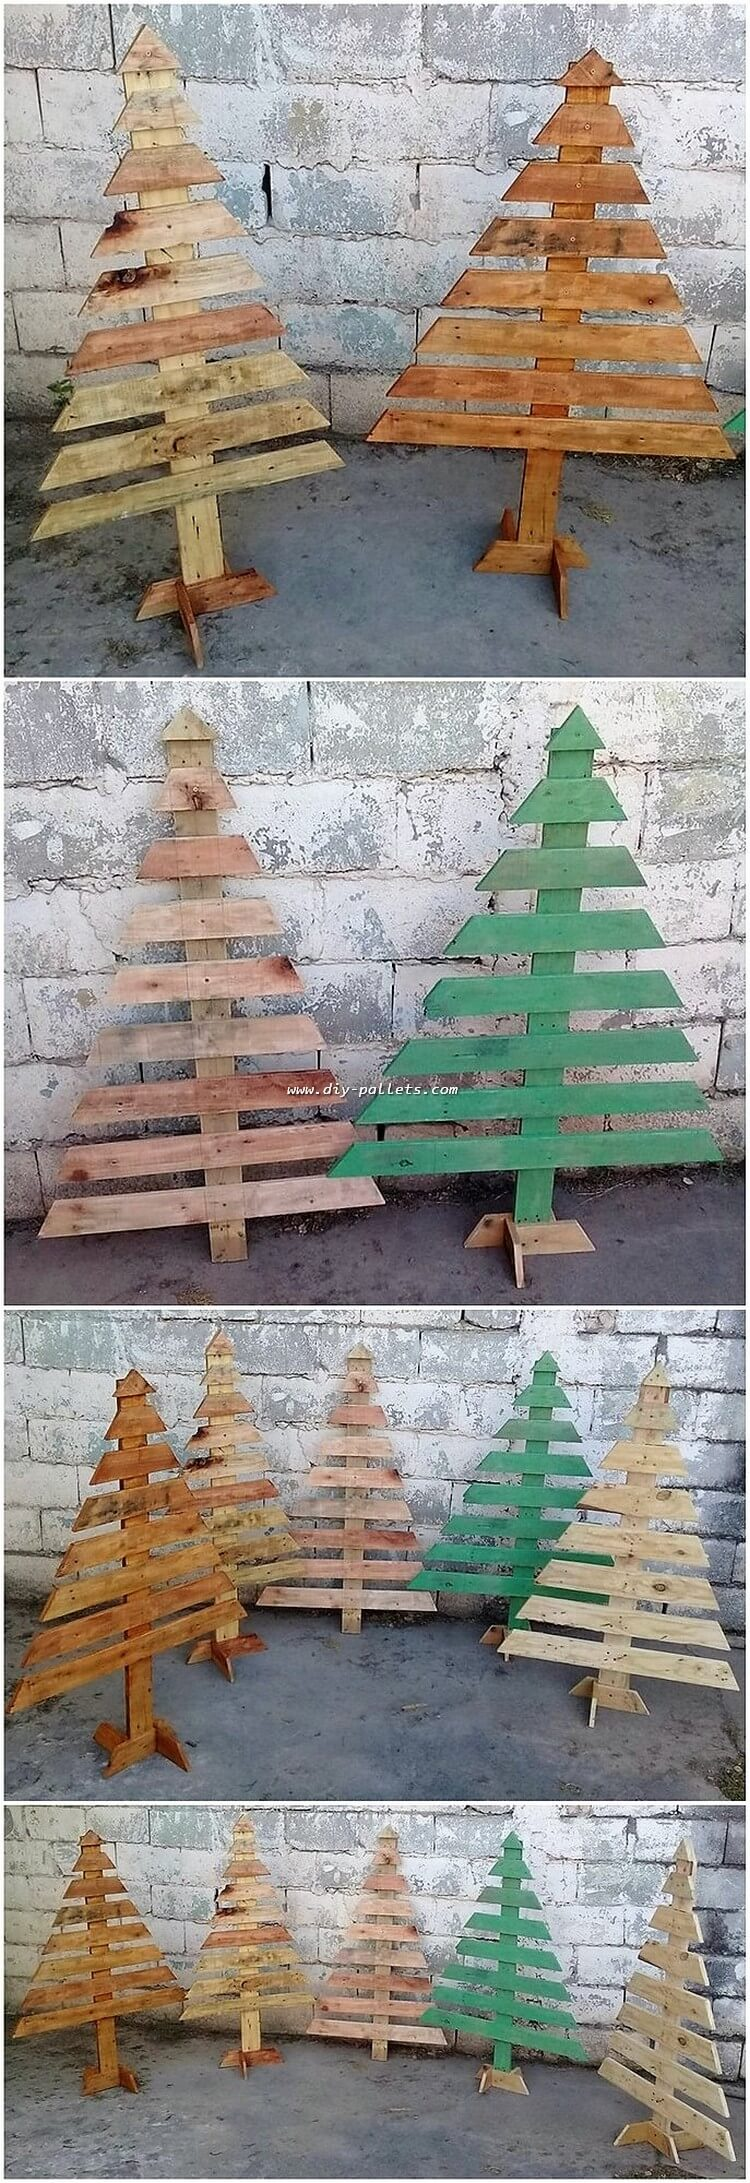 Pallet Trees